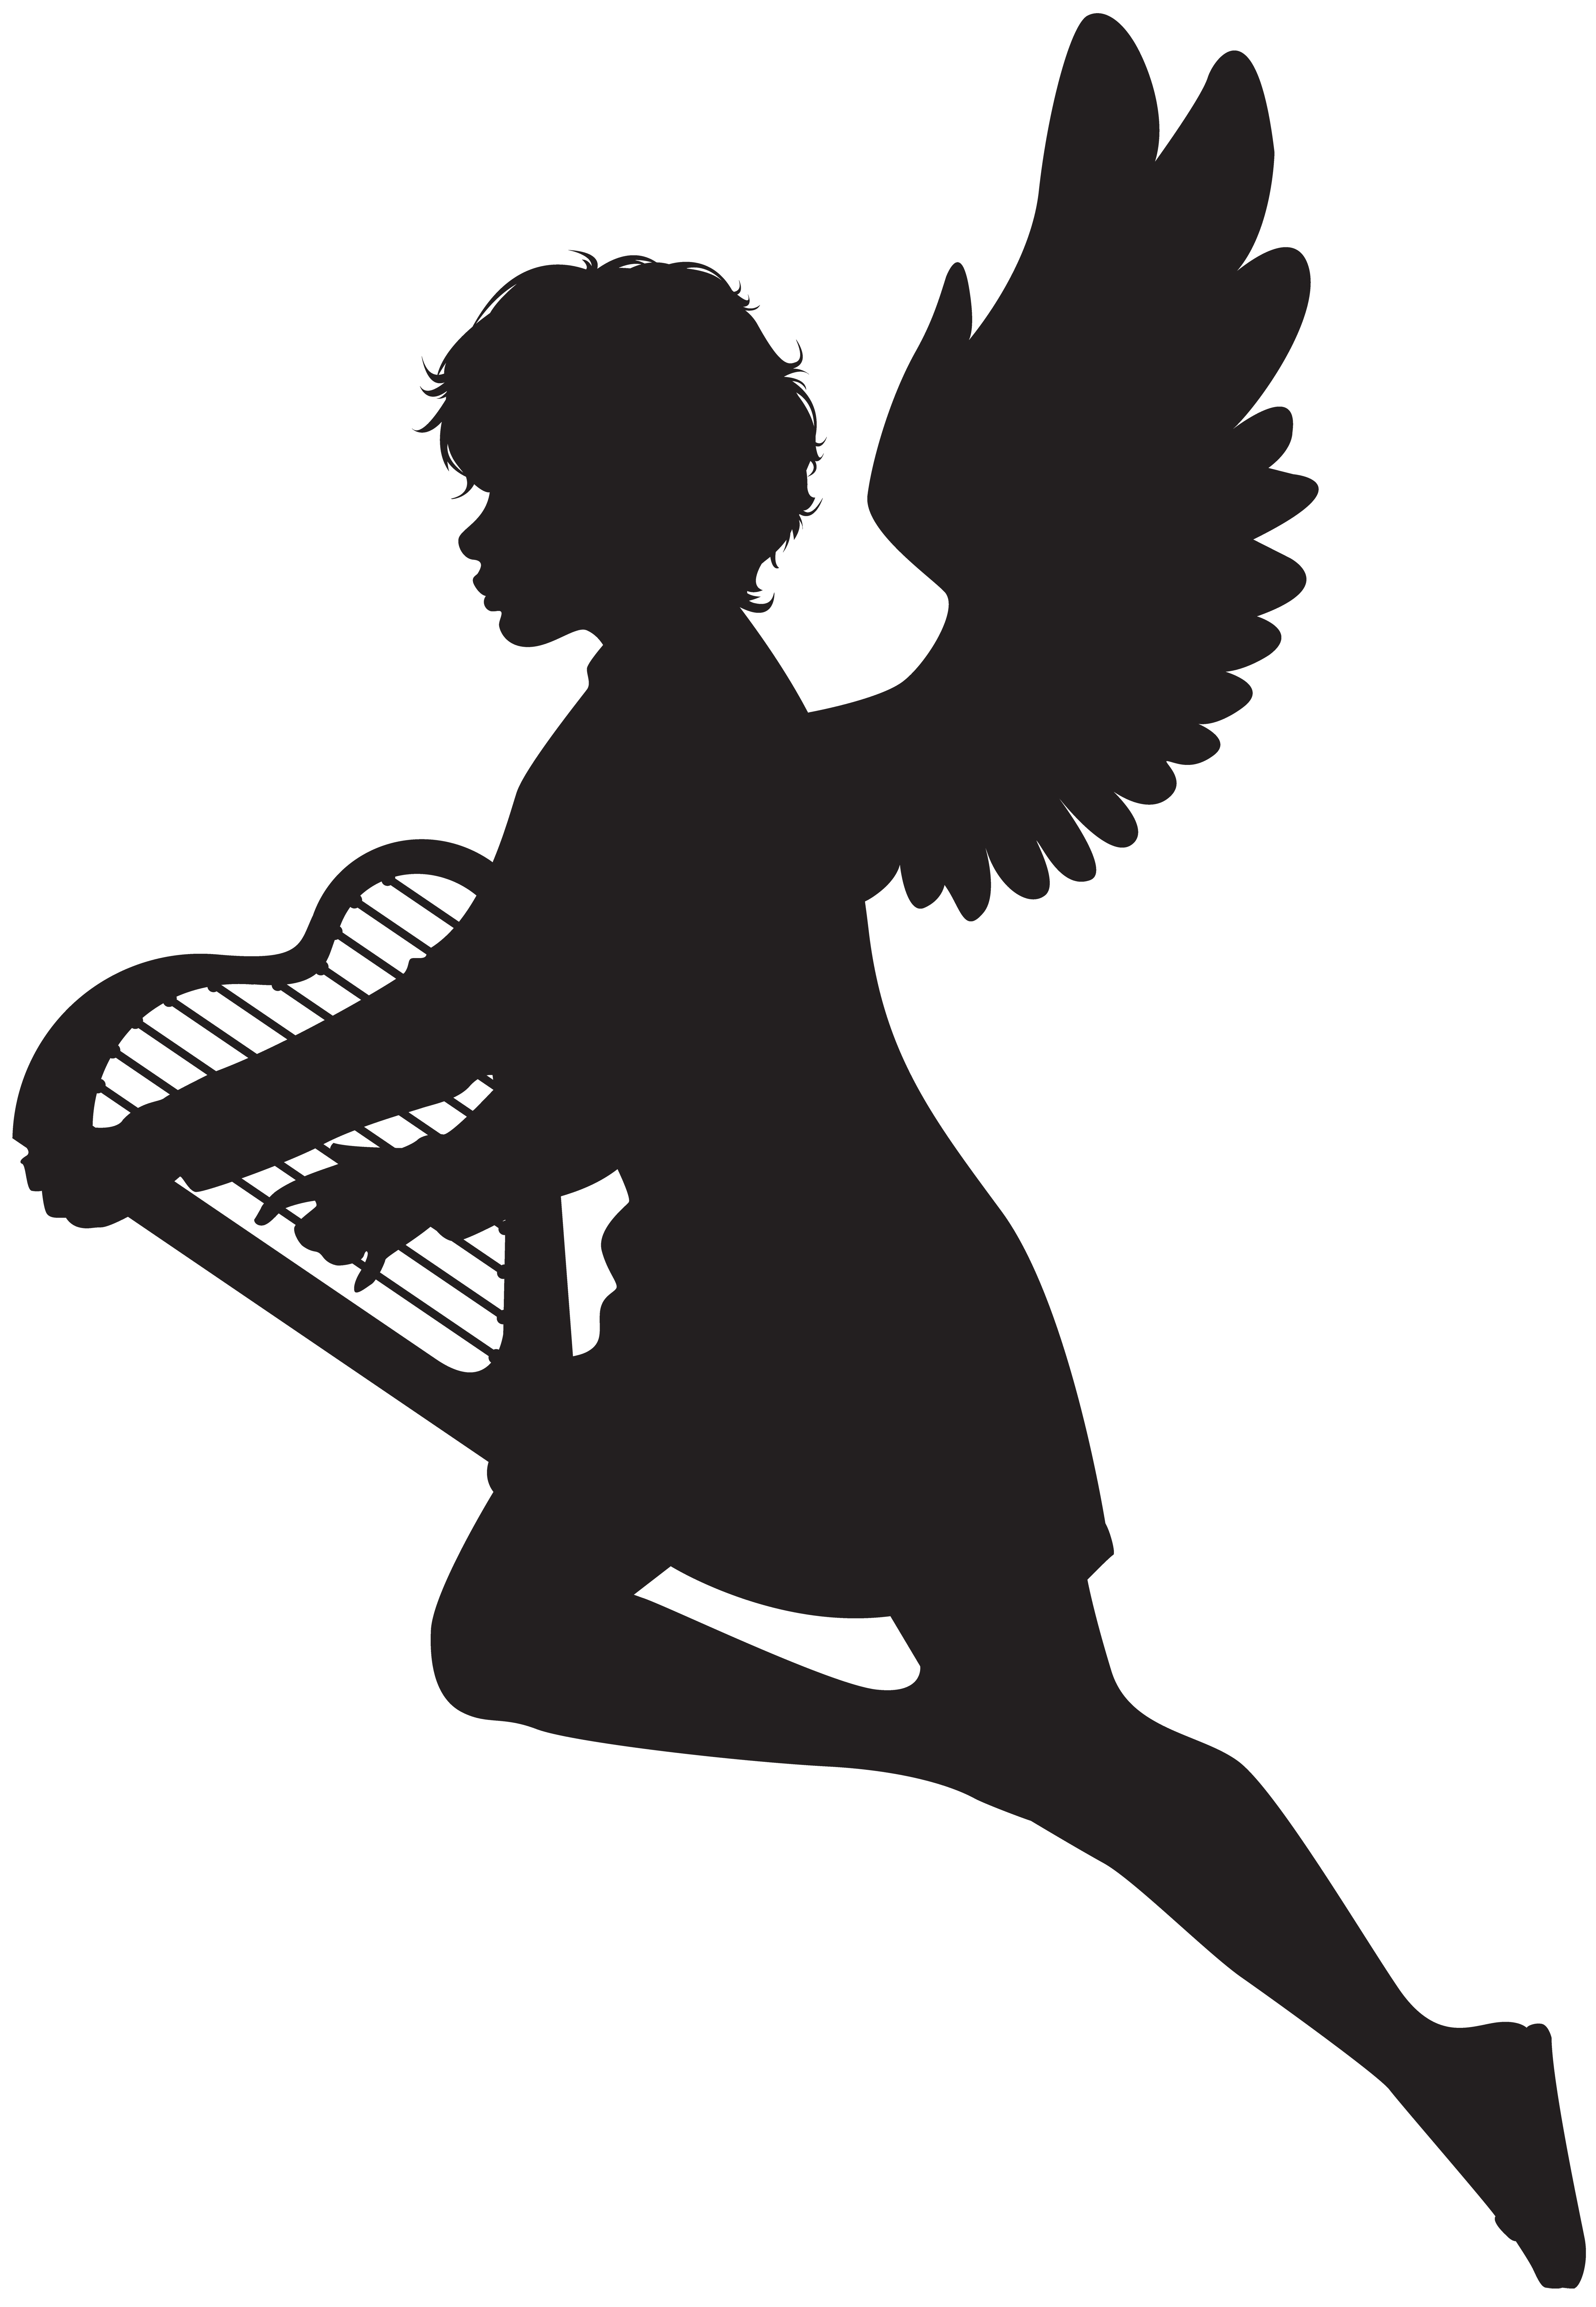 angels vector silhouette #29.